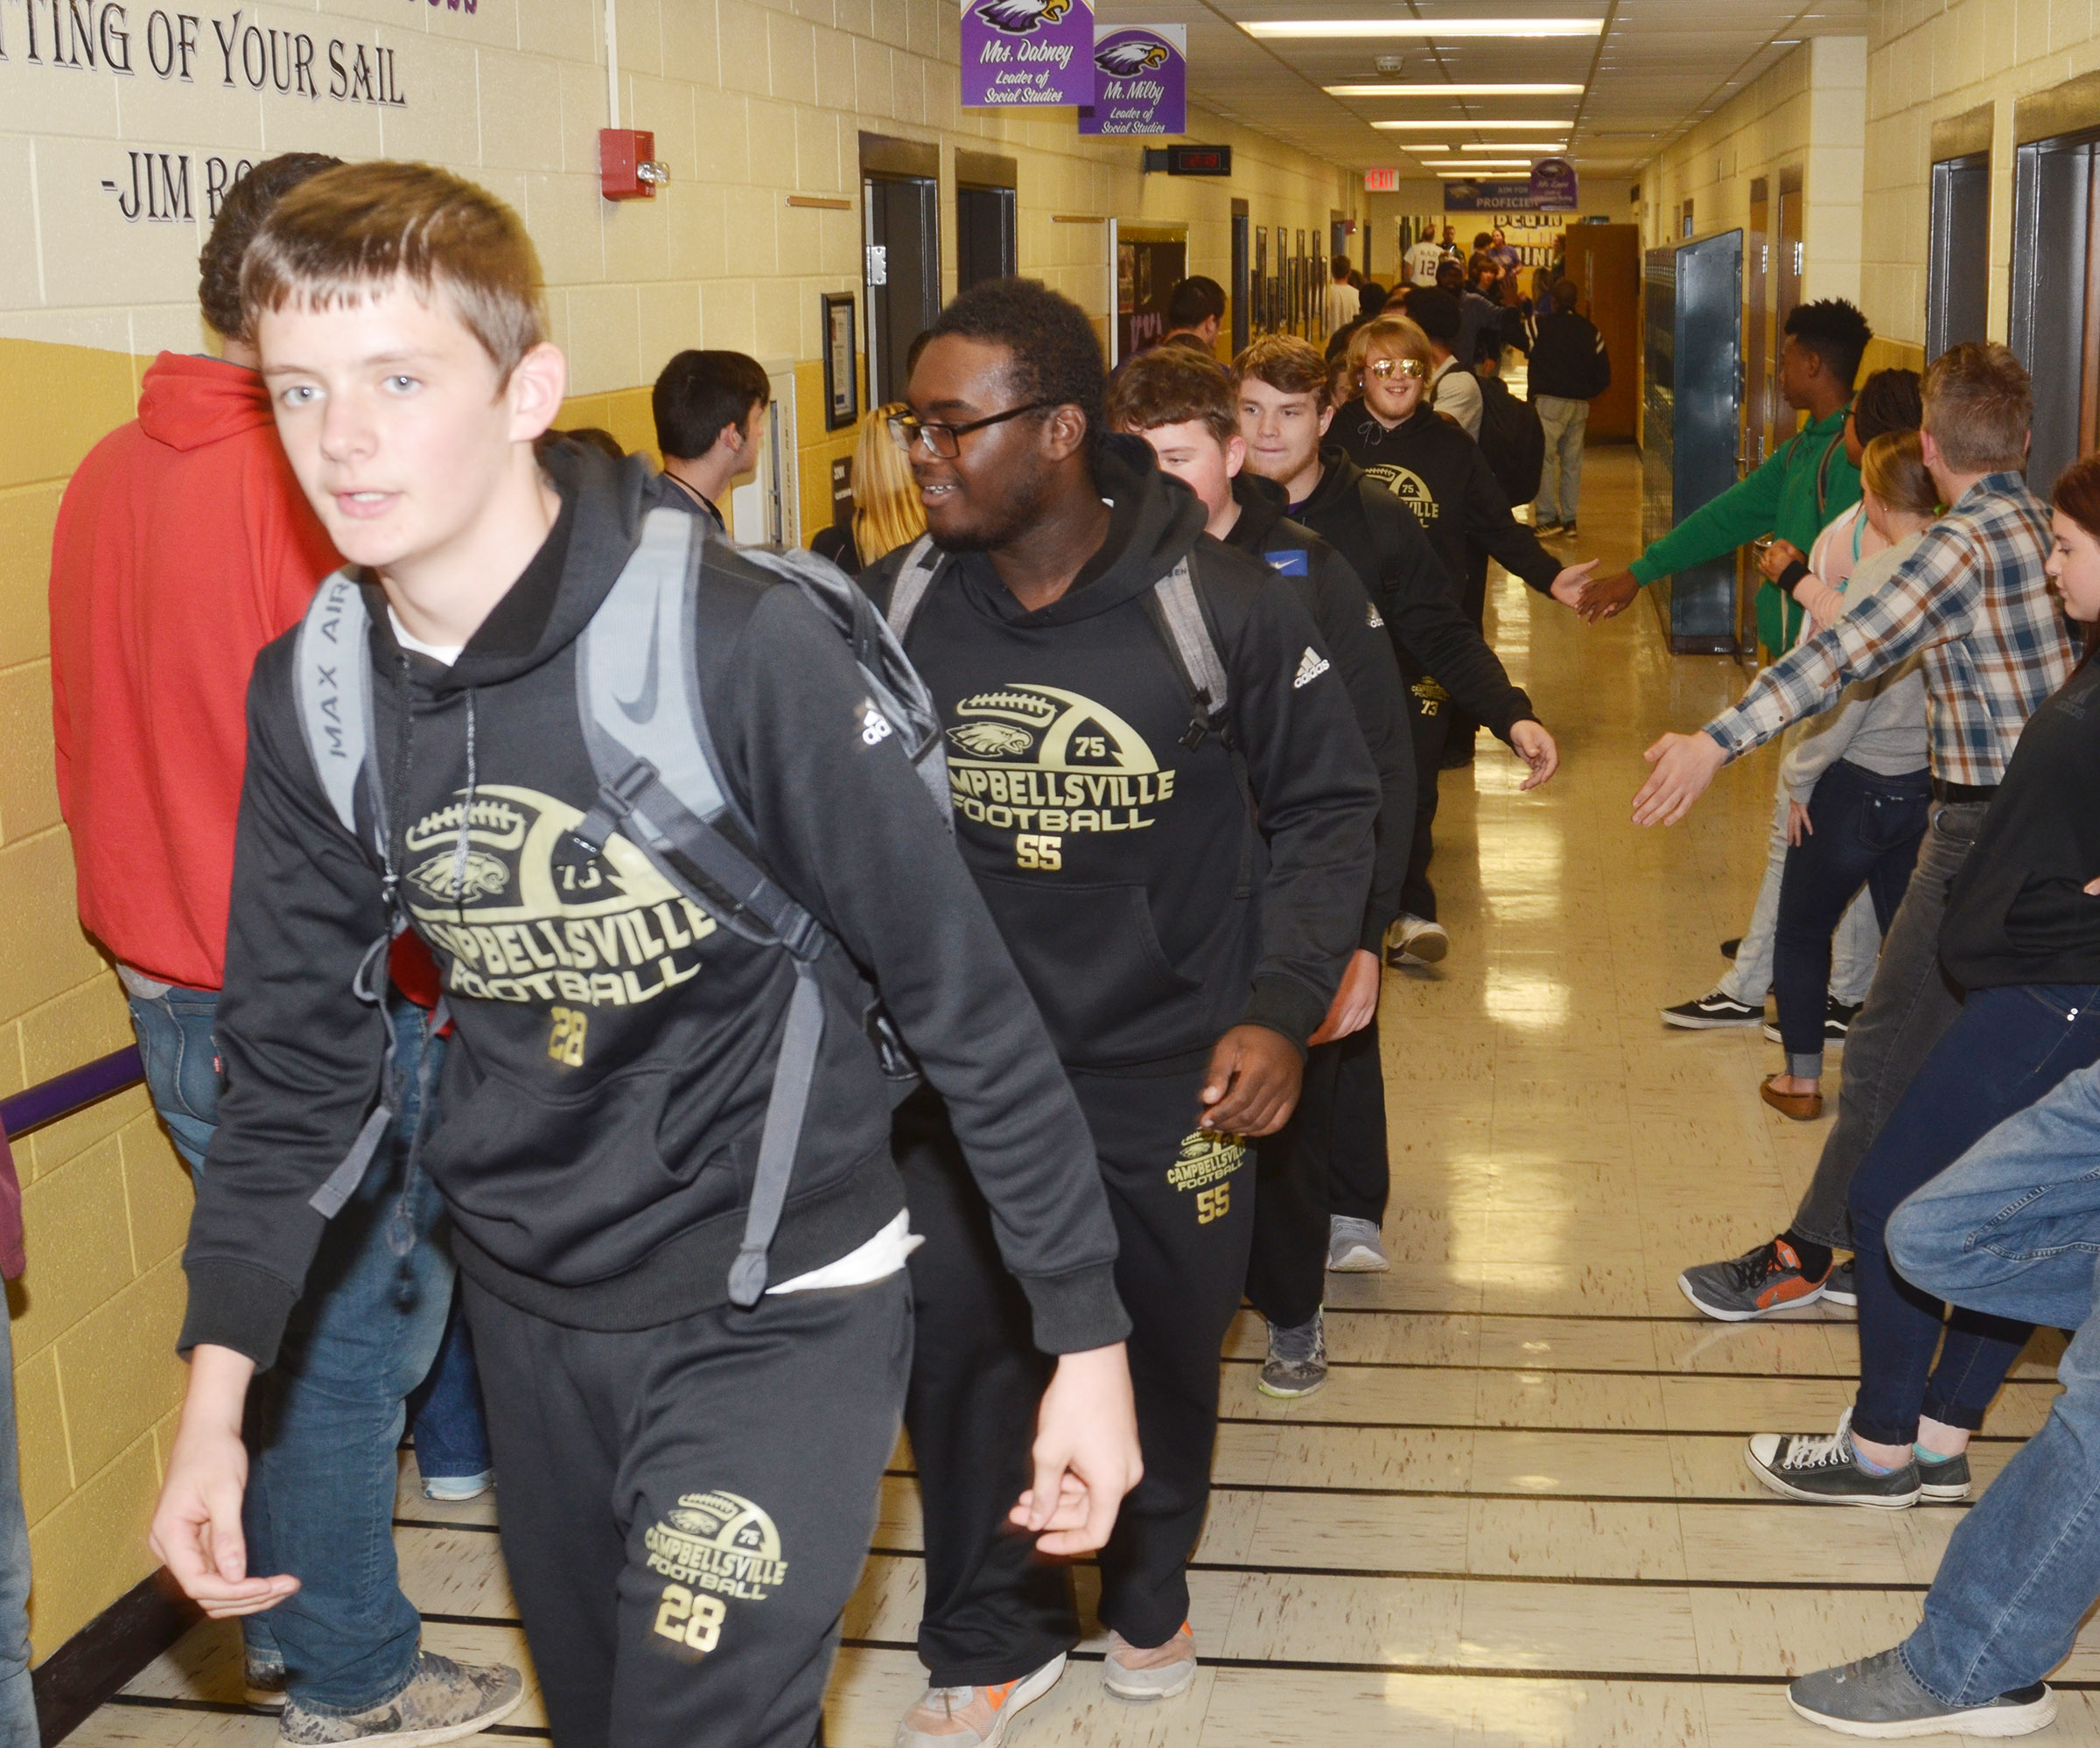 CHS sophomores Blake Allen, at left, and Taekwon McCoy walk with their teammates through the CHS hallways.